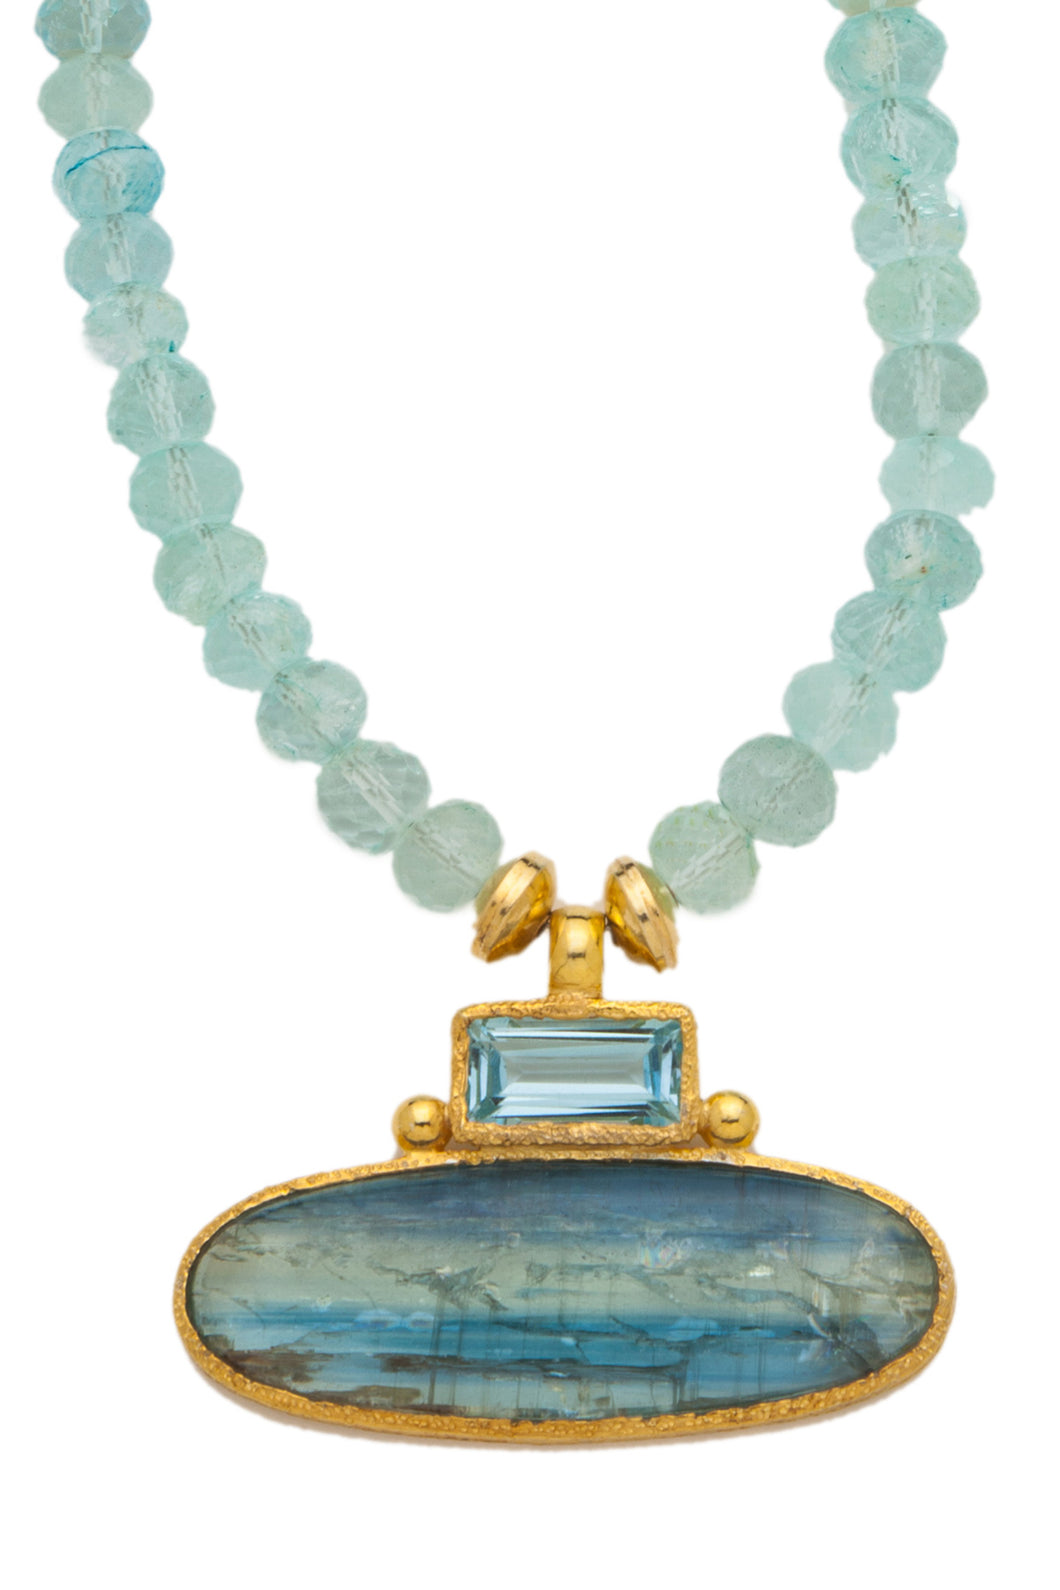 ONE OF A KIND Aqua Marine Necklace with Blue Topaz and Kyanite Pendant set in 24kt gold vermeil NF277-AM-BT